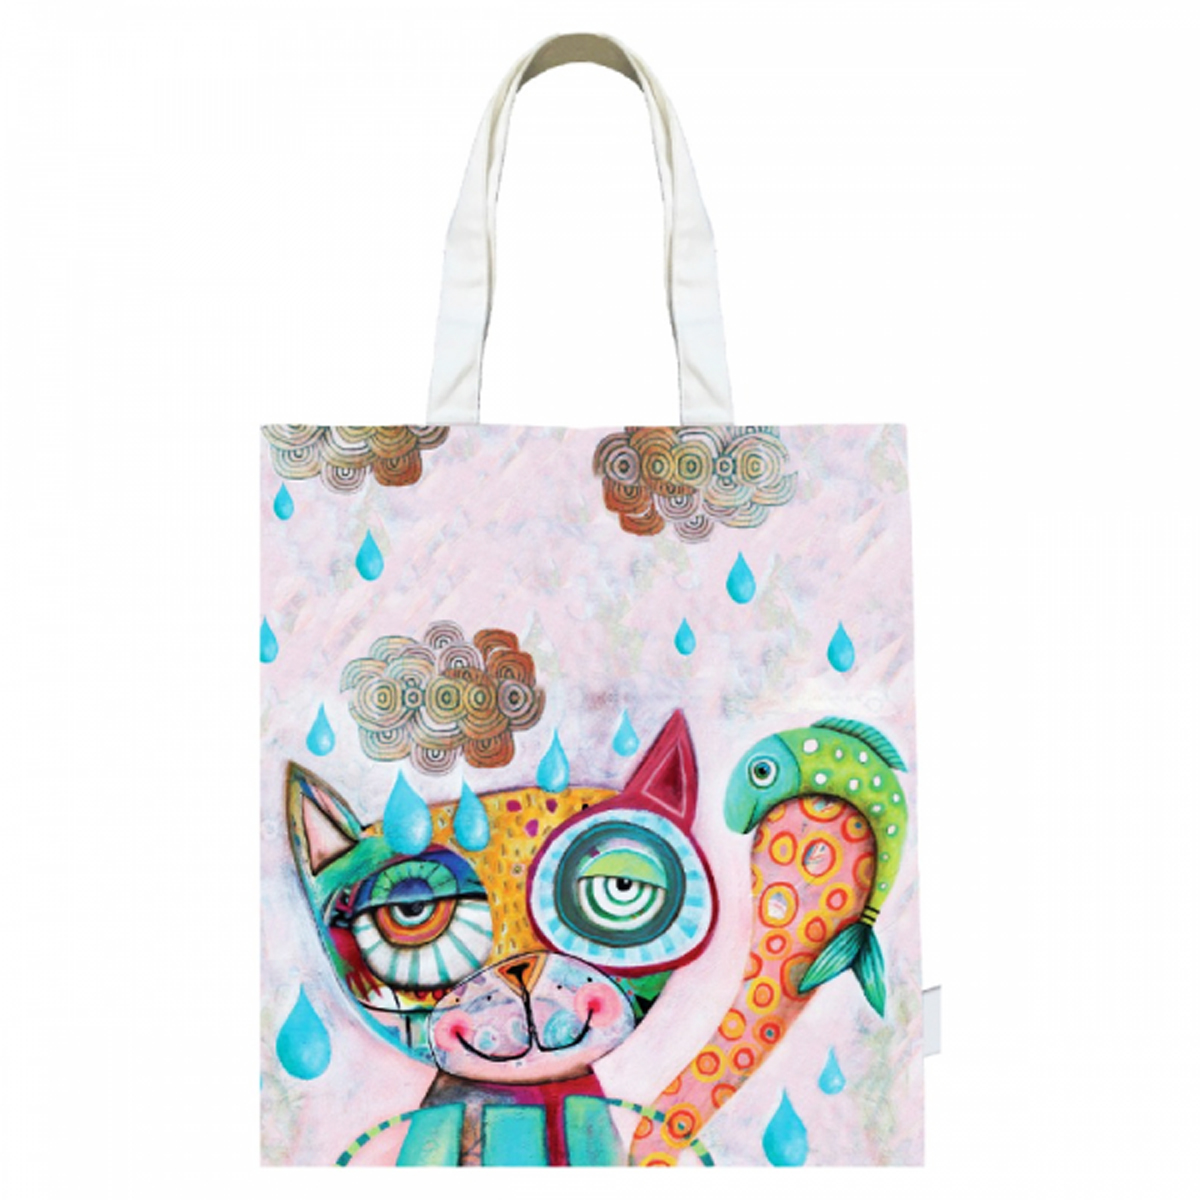 Sac coton / tote bag \'Allen Designs\' rose multicolore (chat) - 43x39 cm - [R1953]